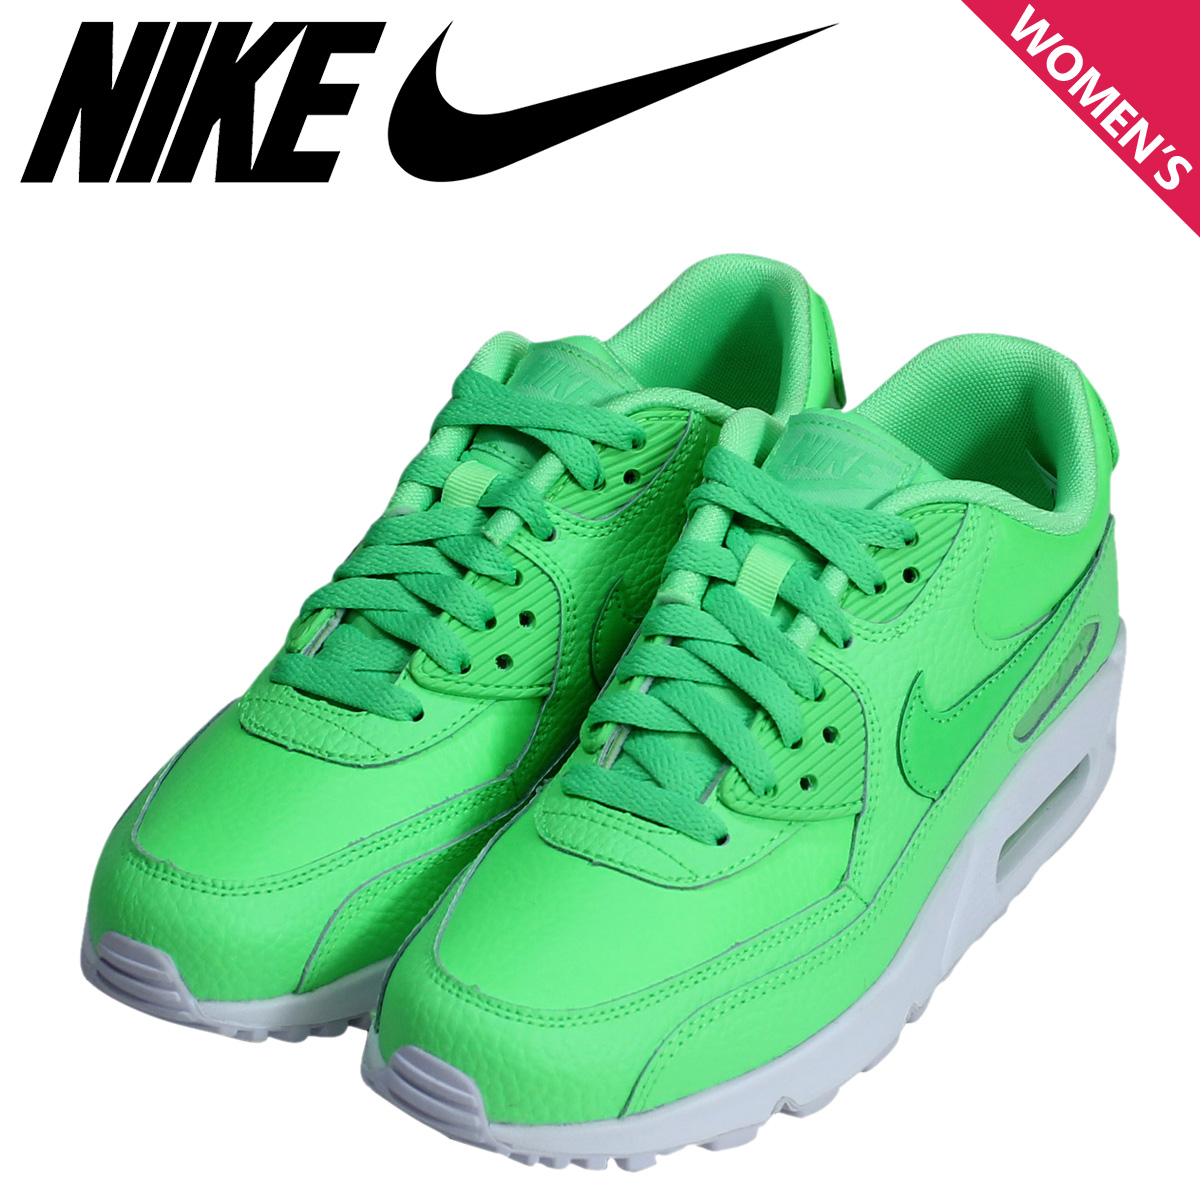 sports shoes ff832 18585 Nike NIKE Air Max Lady s sneakers AIR MAX 90 MESH GS 724,821-300 shoes  green  2 23 Shinnyu load